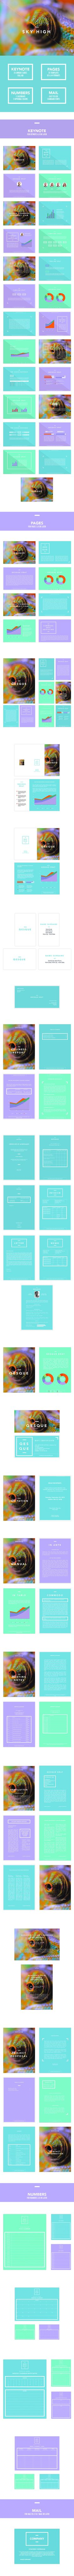 Sky High Keynote Template #design #slides Download: http://graphicriver.net/item/sky-high/12530064?ref=ksioks